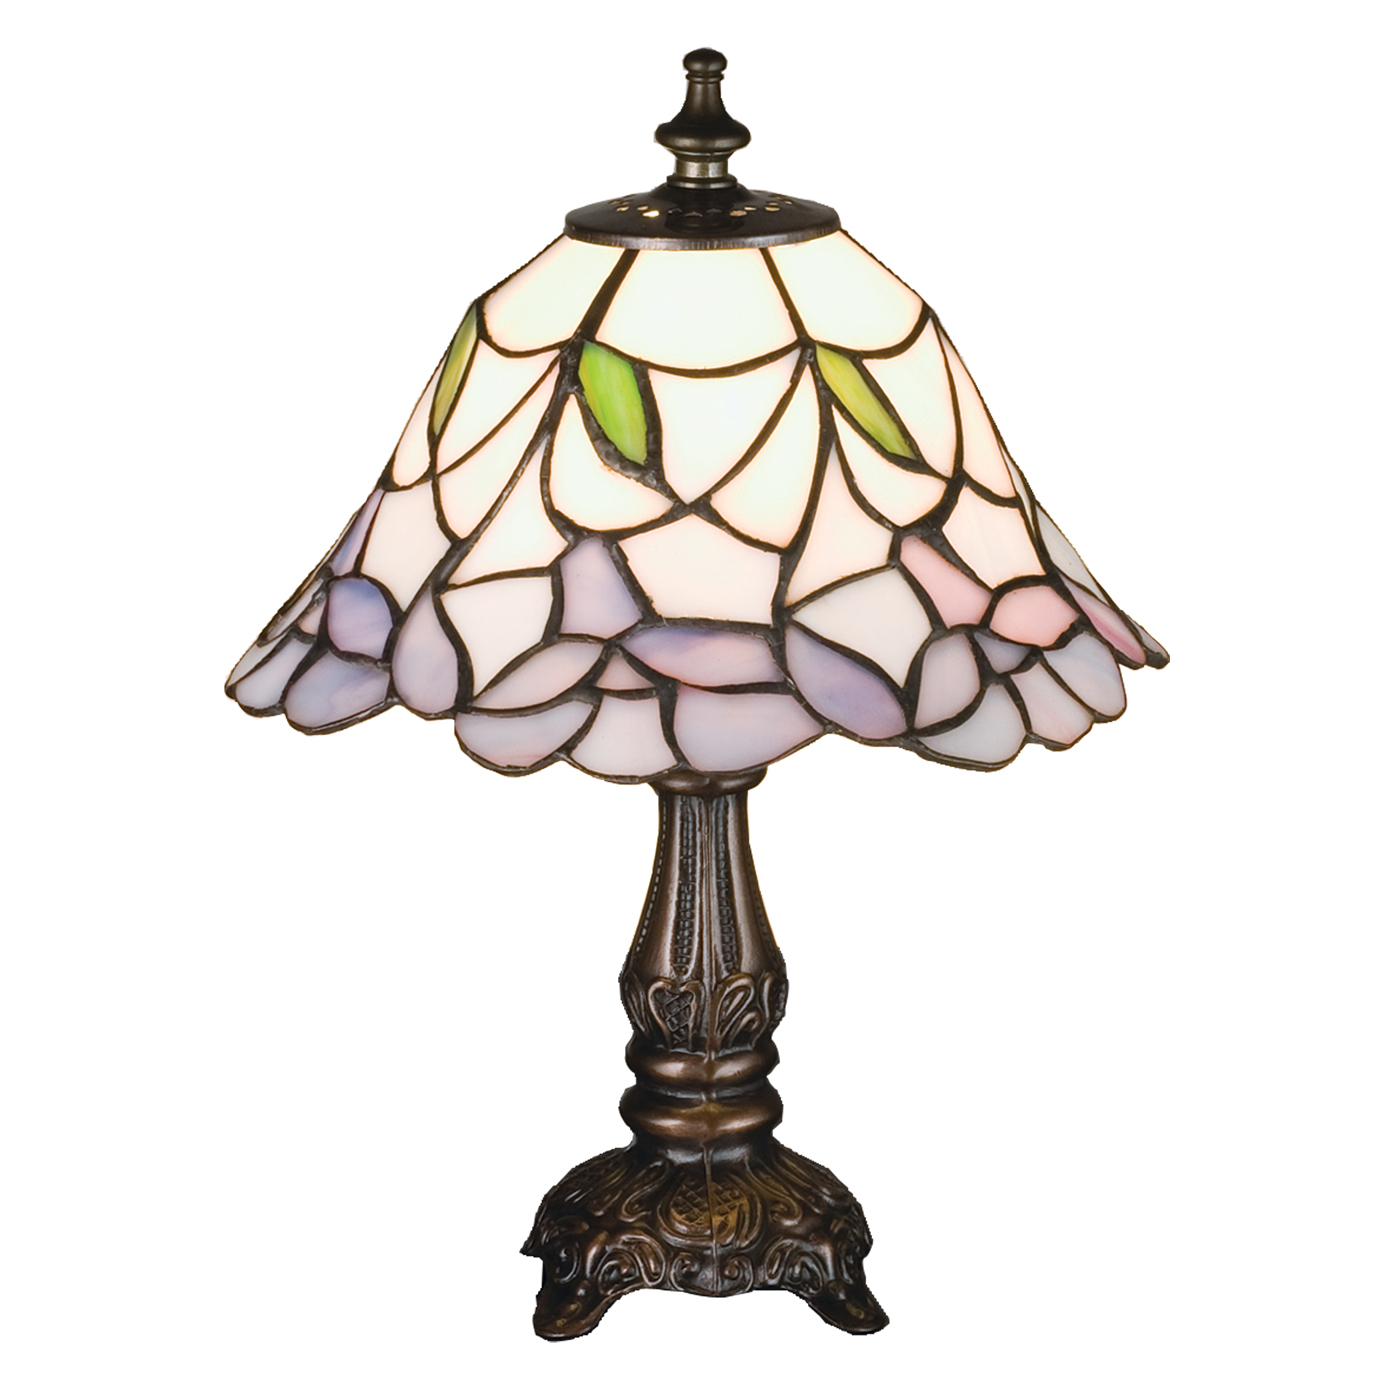 meyda tiffany mini table lamp atg small lamps accent ethan allen dining room chairs counter height rectangular removable tray rectangle glass coffee chestnut bedroom corner modern